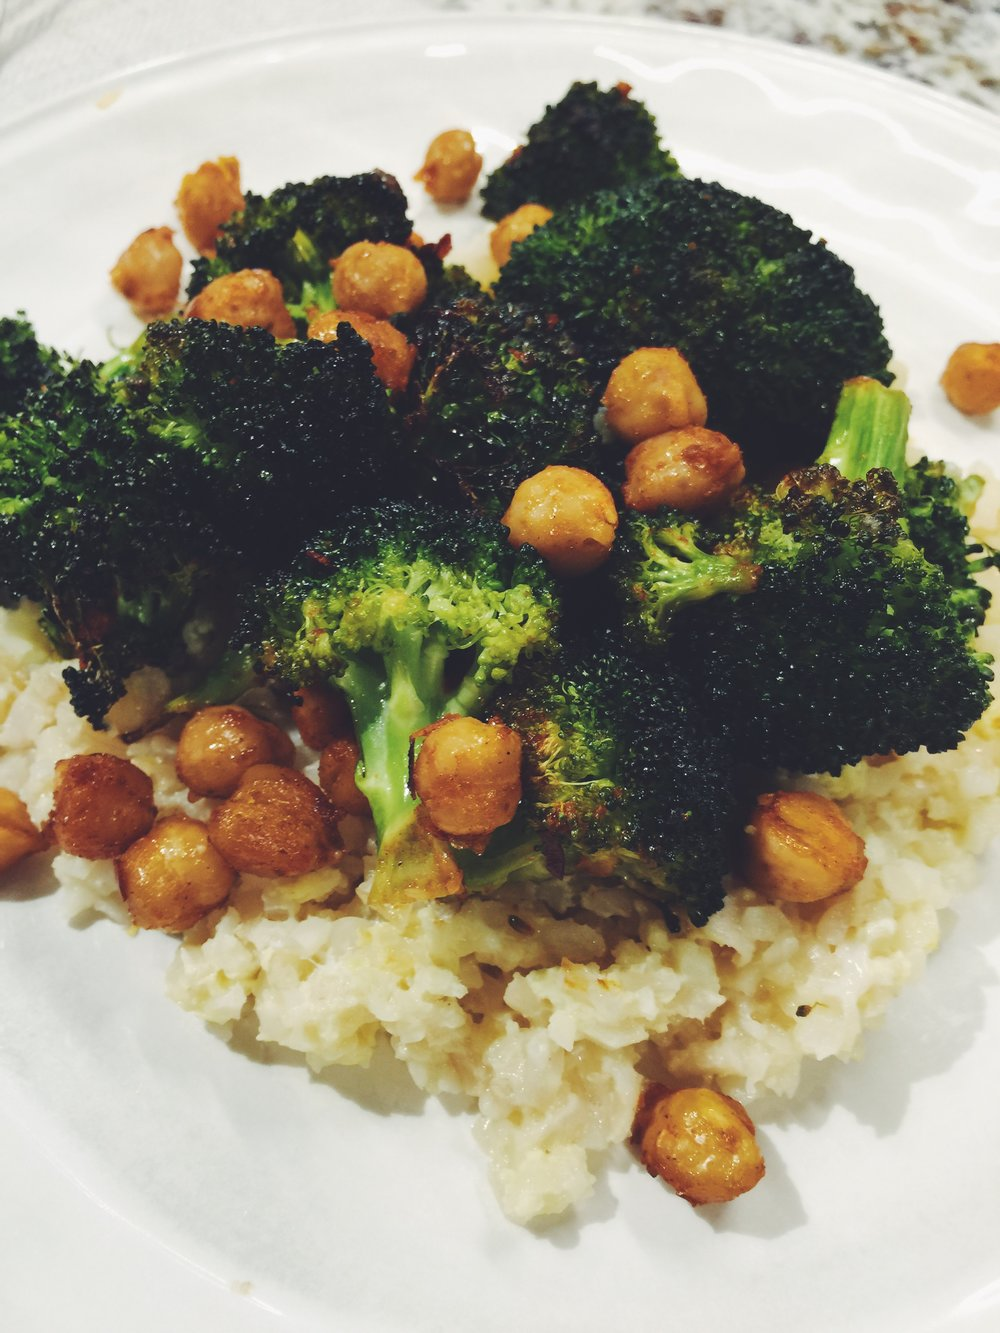 chili glazed broccoli and chickpeas